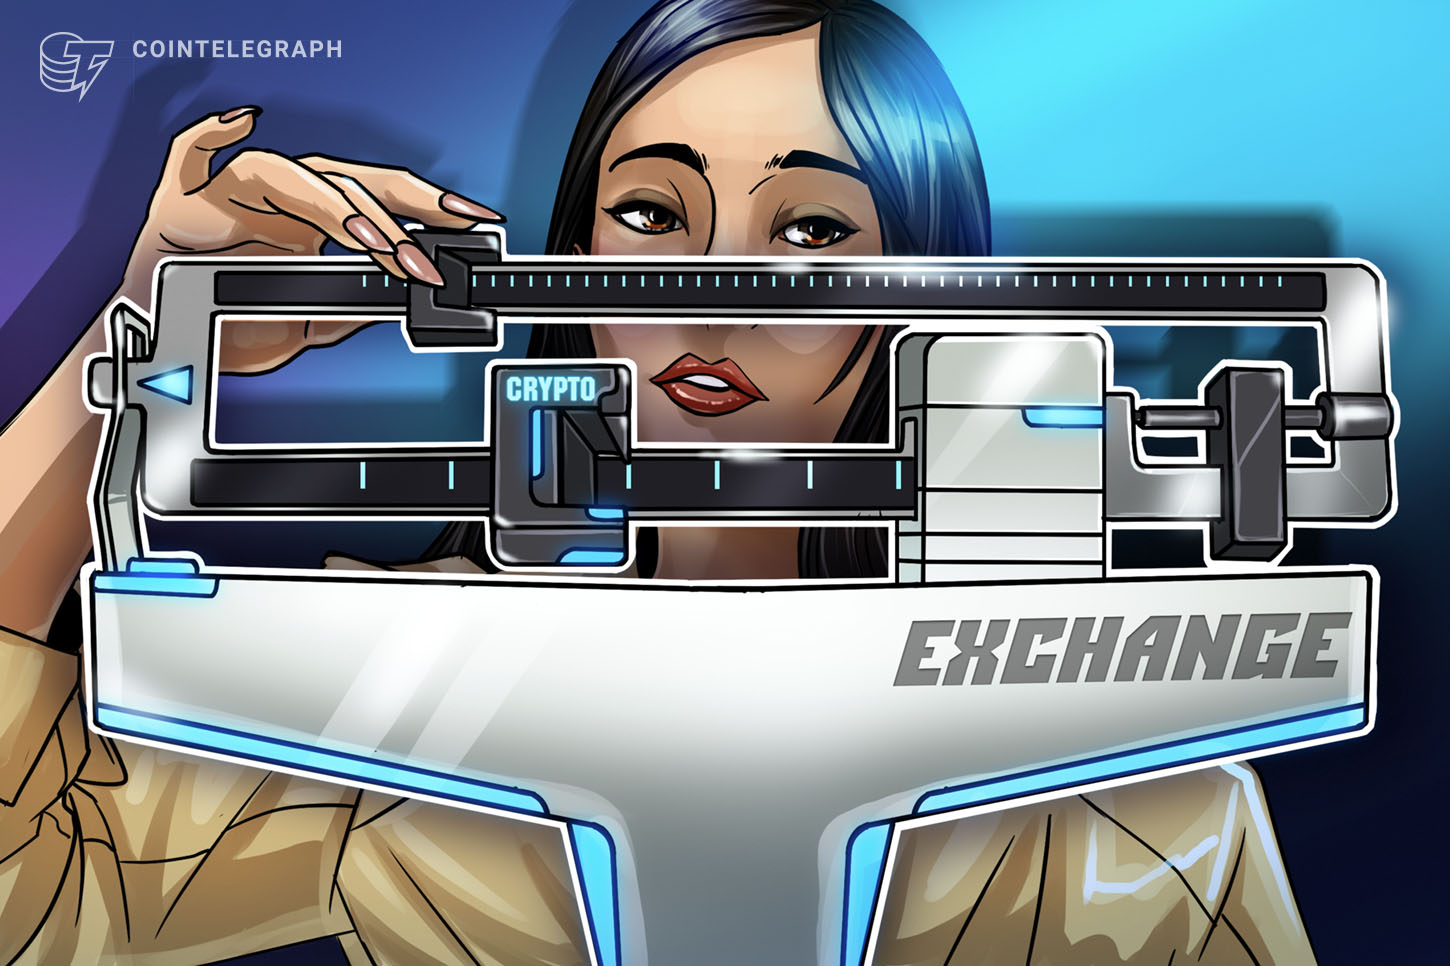 Majority of Korean crypto exchanges to shut down this month, insiders say